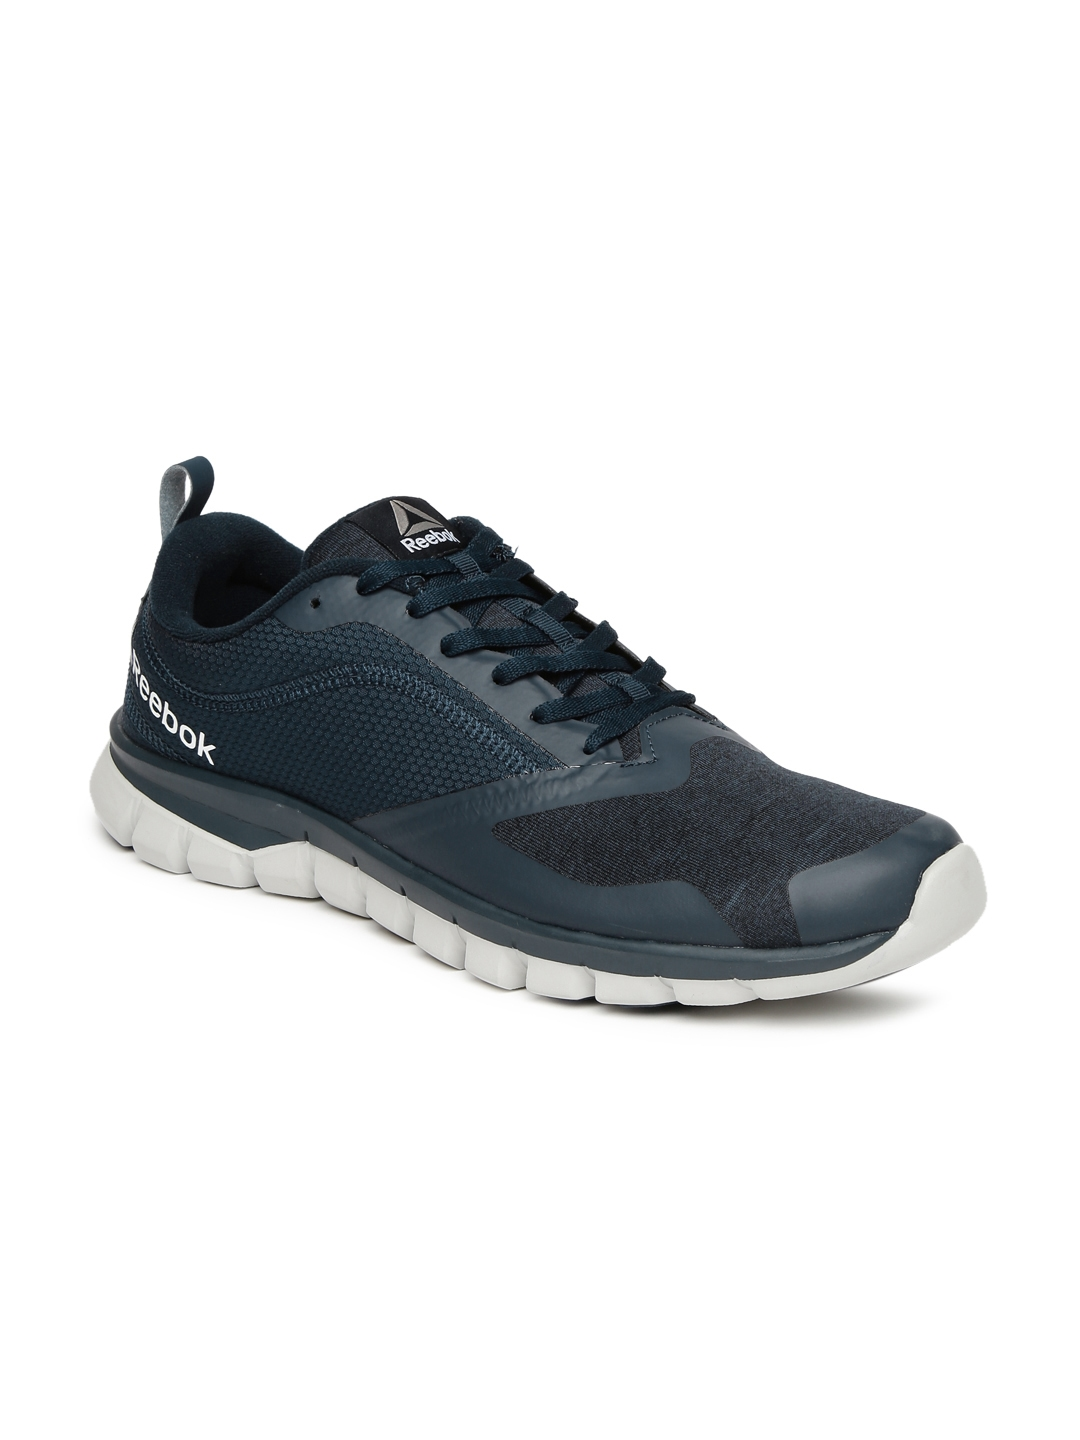 Buy Reebok Men Navy Sublite Authentic 4.0 Running Shoes - Sports ... 14364c5b6